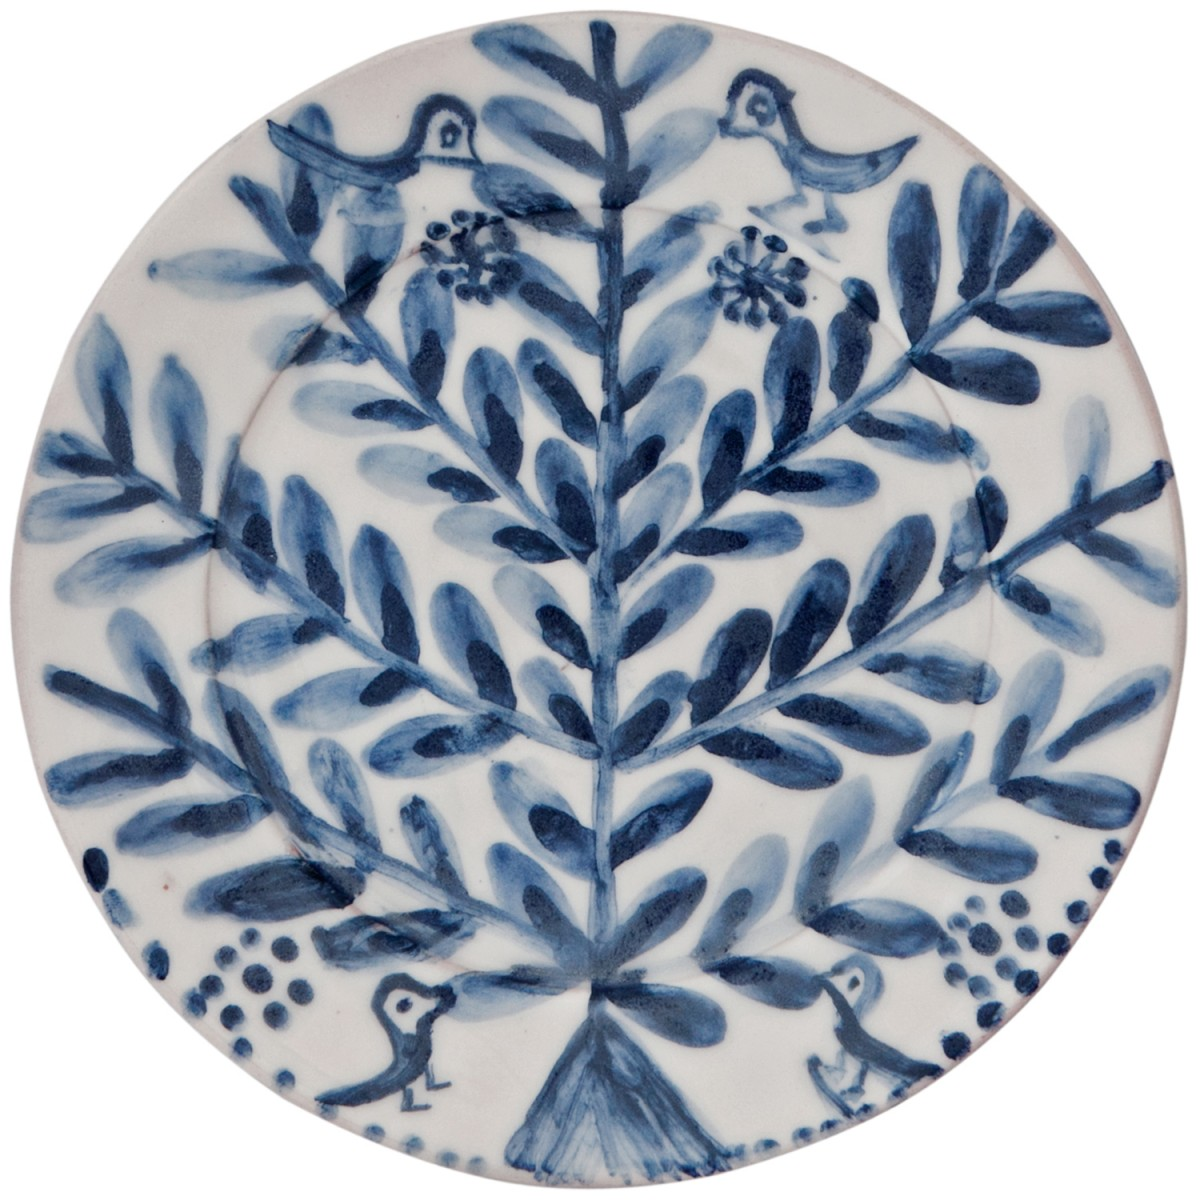 Decorative_Blue_and_White_Plates-Hand_painted-Flowers_Birds-1